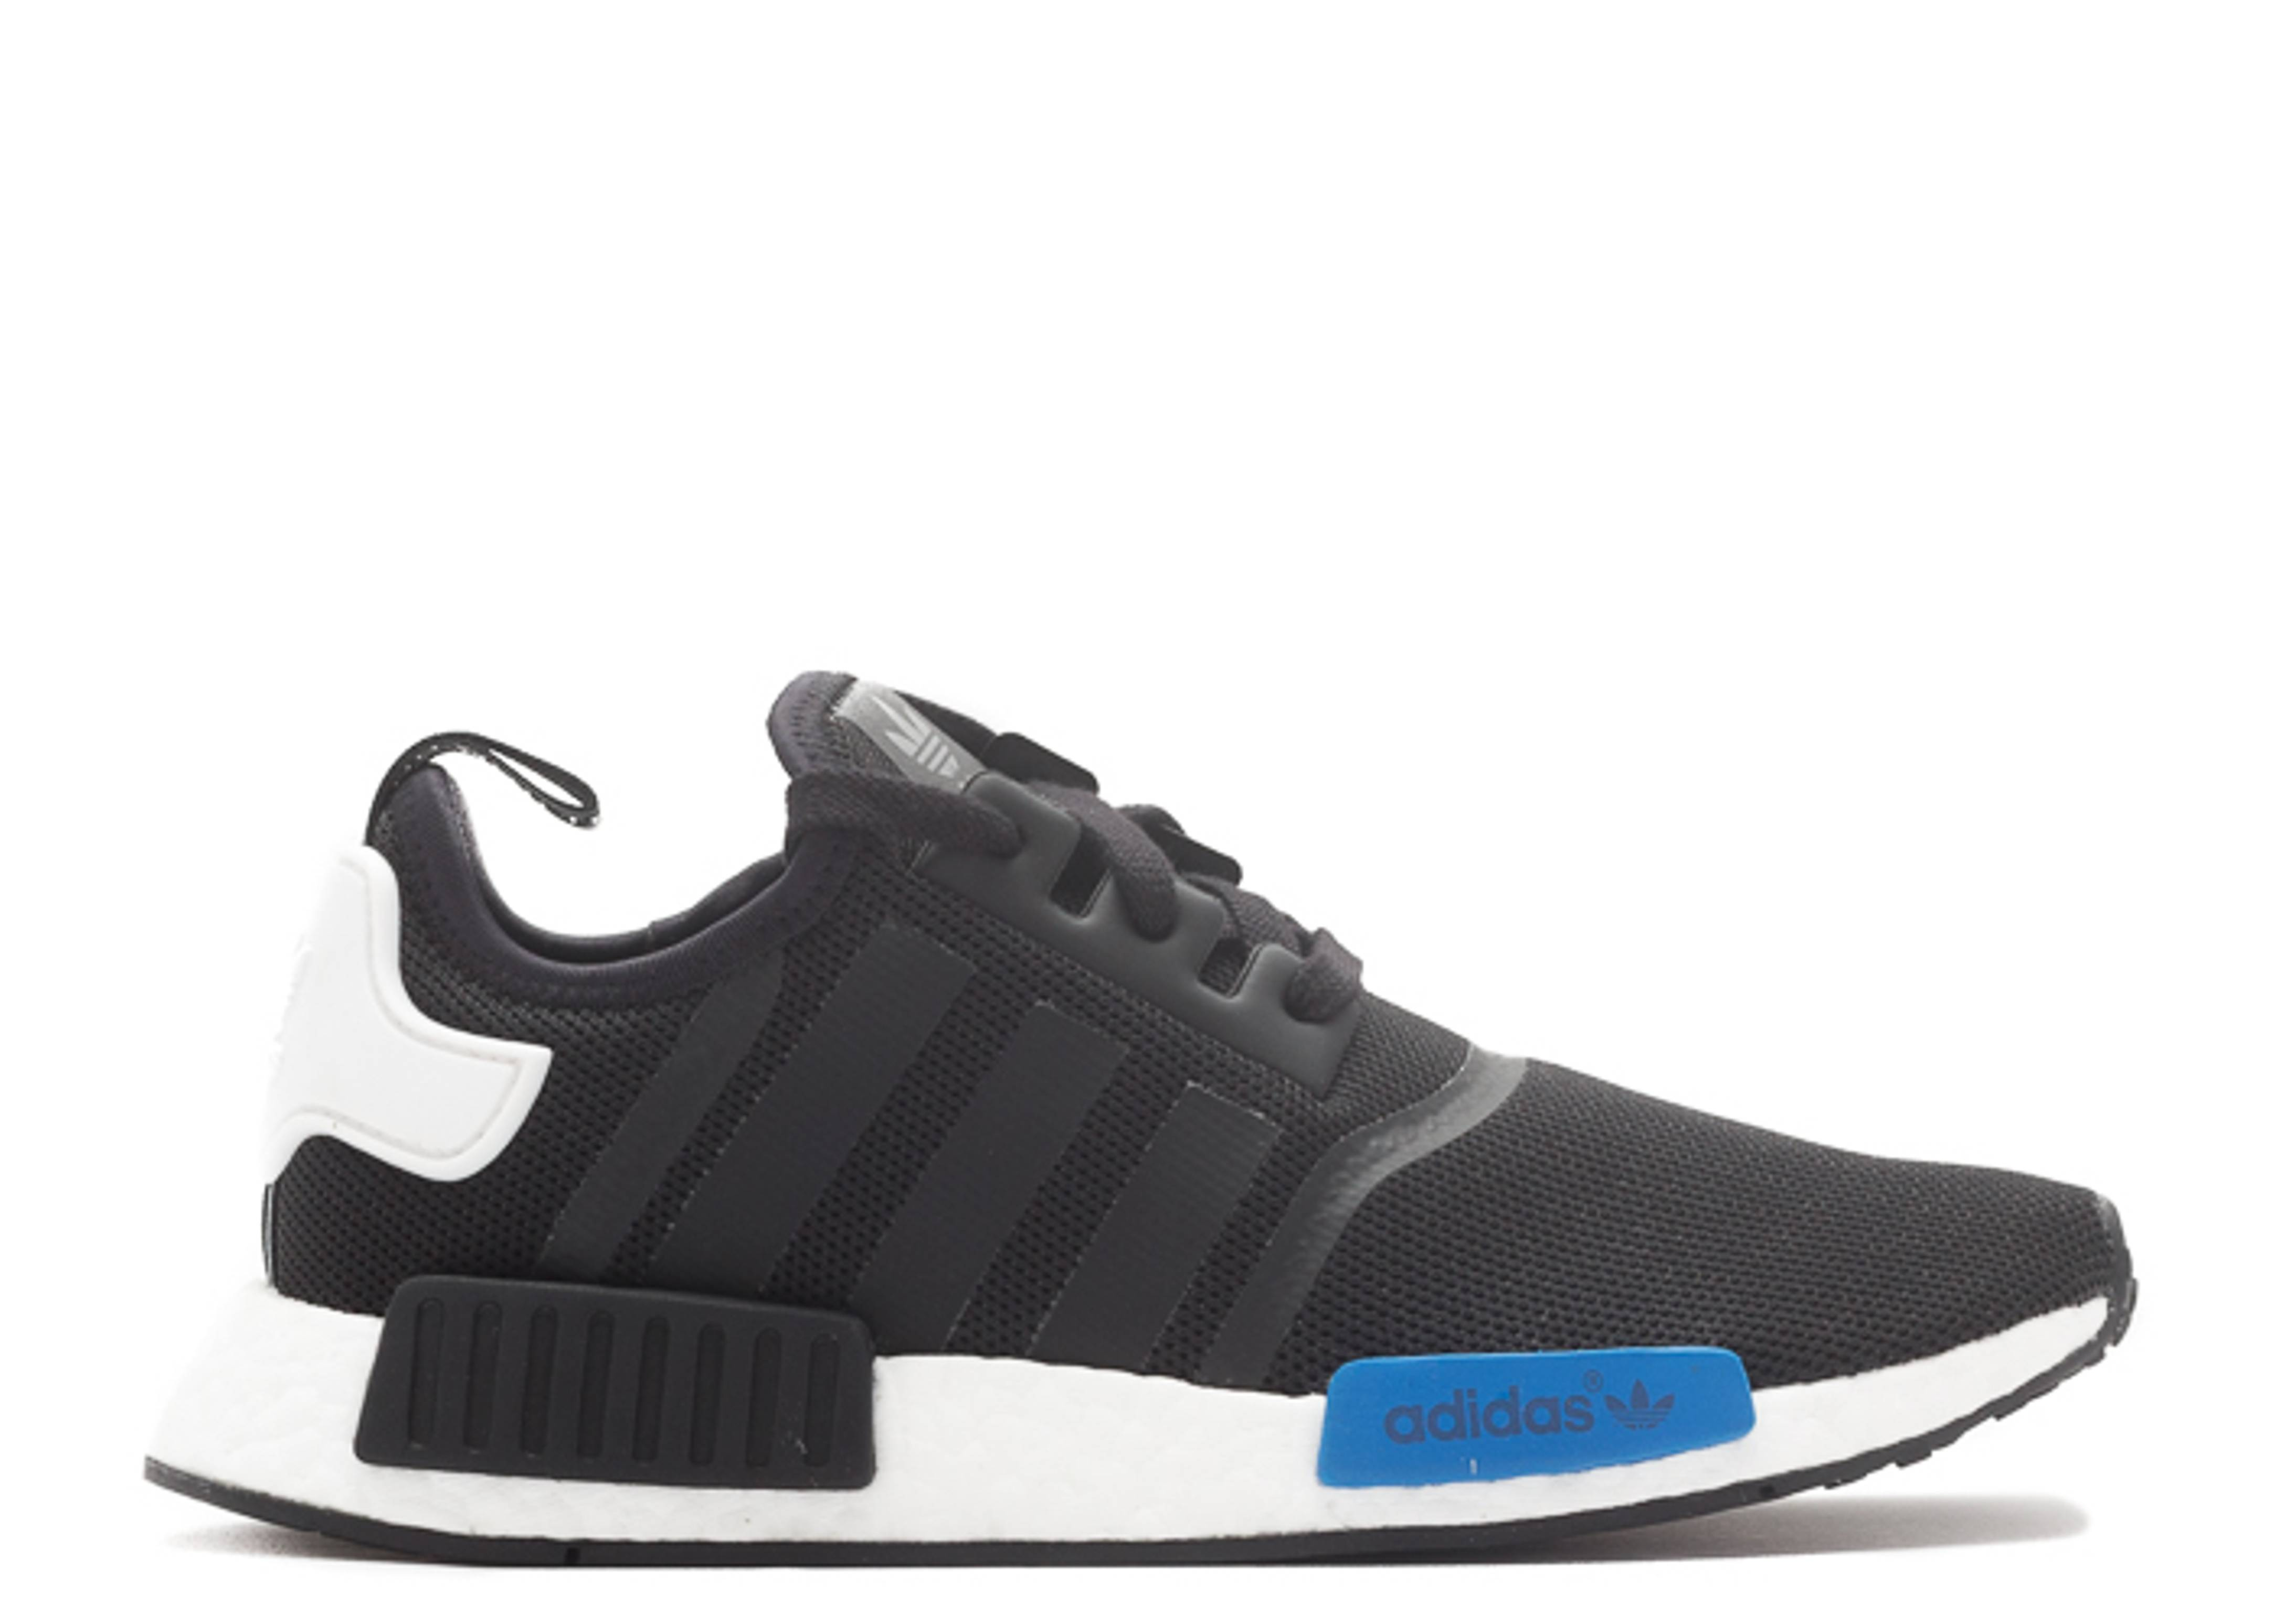 new style 33fc6 a9c9a Adidas Nmd Runner J kenmore-cleaning.co.uk